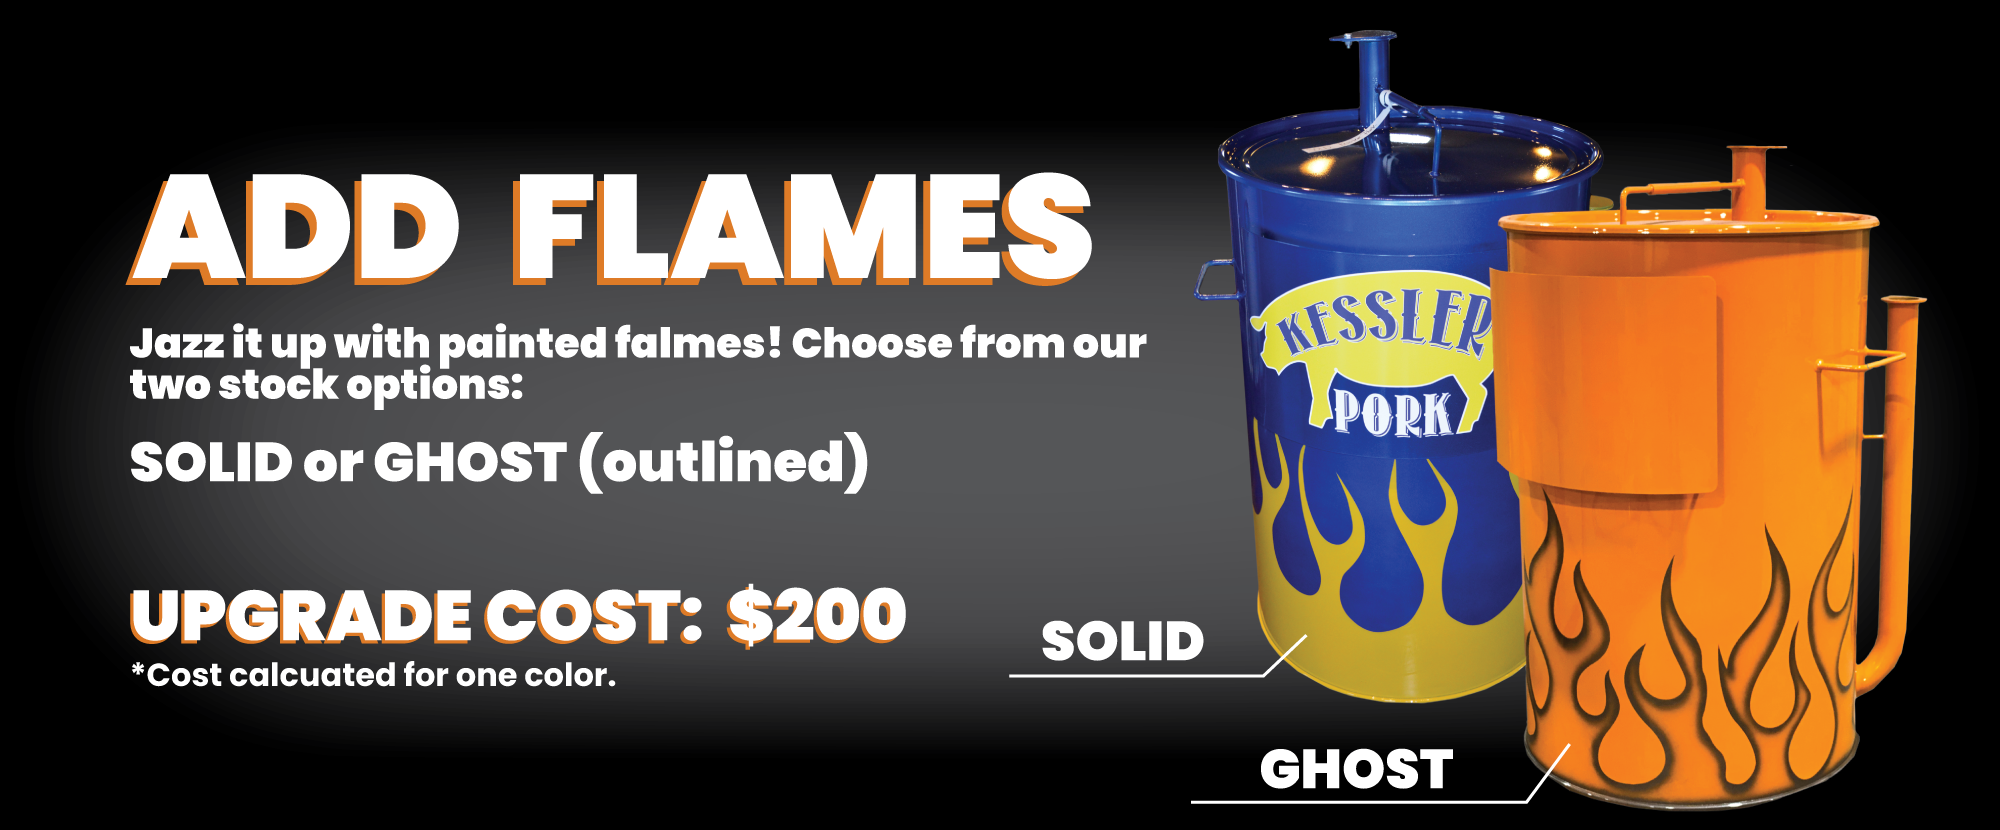 Add Flames: Jazz it up with painted flaes! Choose from our two stock options - solid or ghost (outlined) Upgrade cost: $200 *cost calculated for one color.